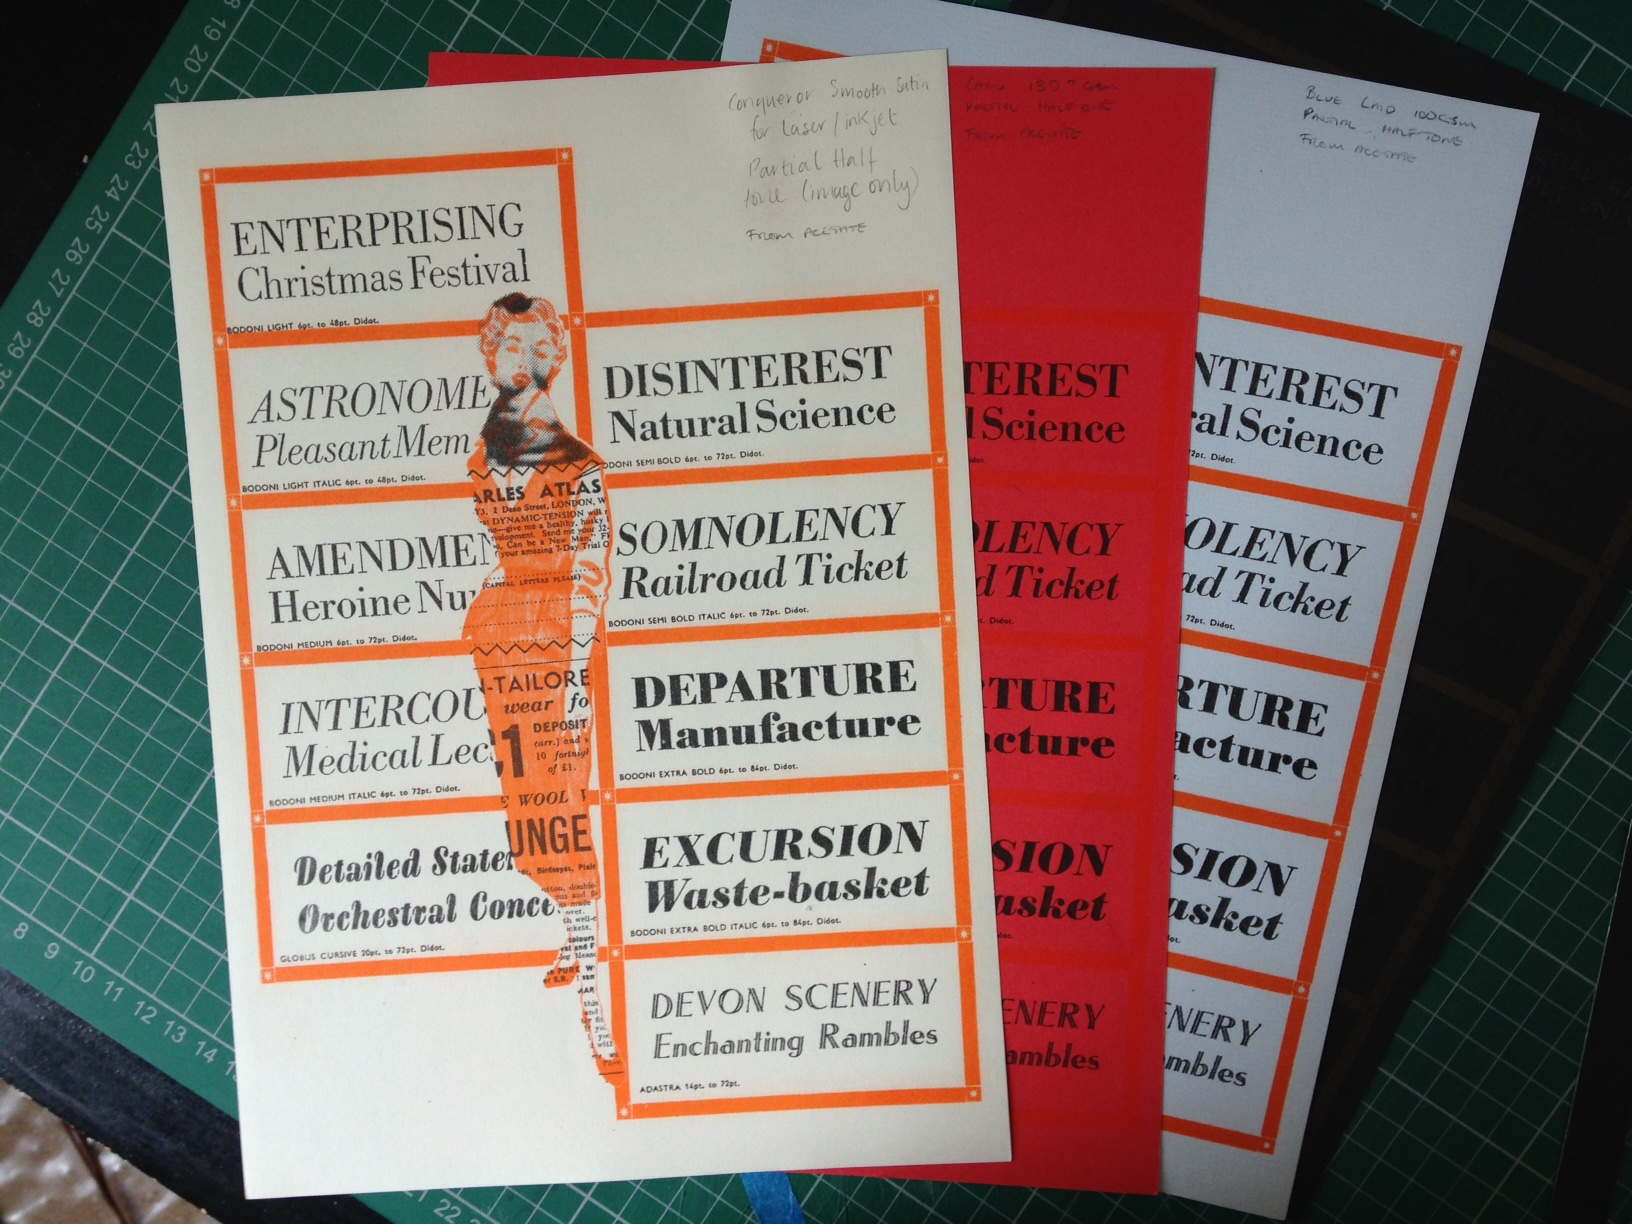 Shows a fan pf papers printed in orange and black, text and image of a woman